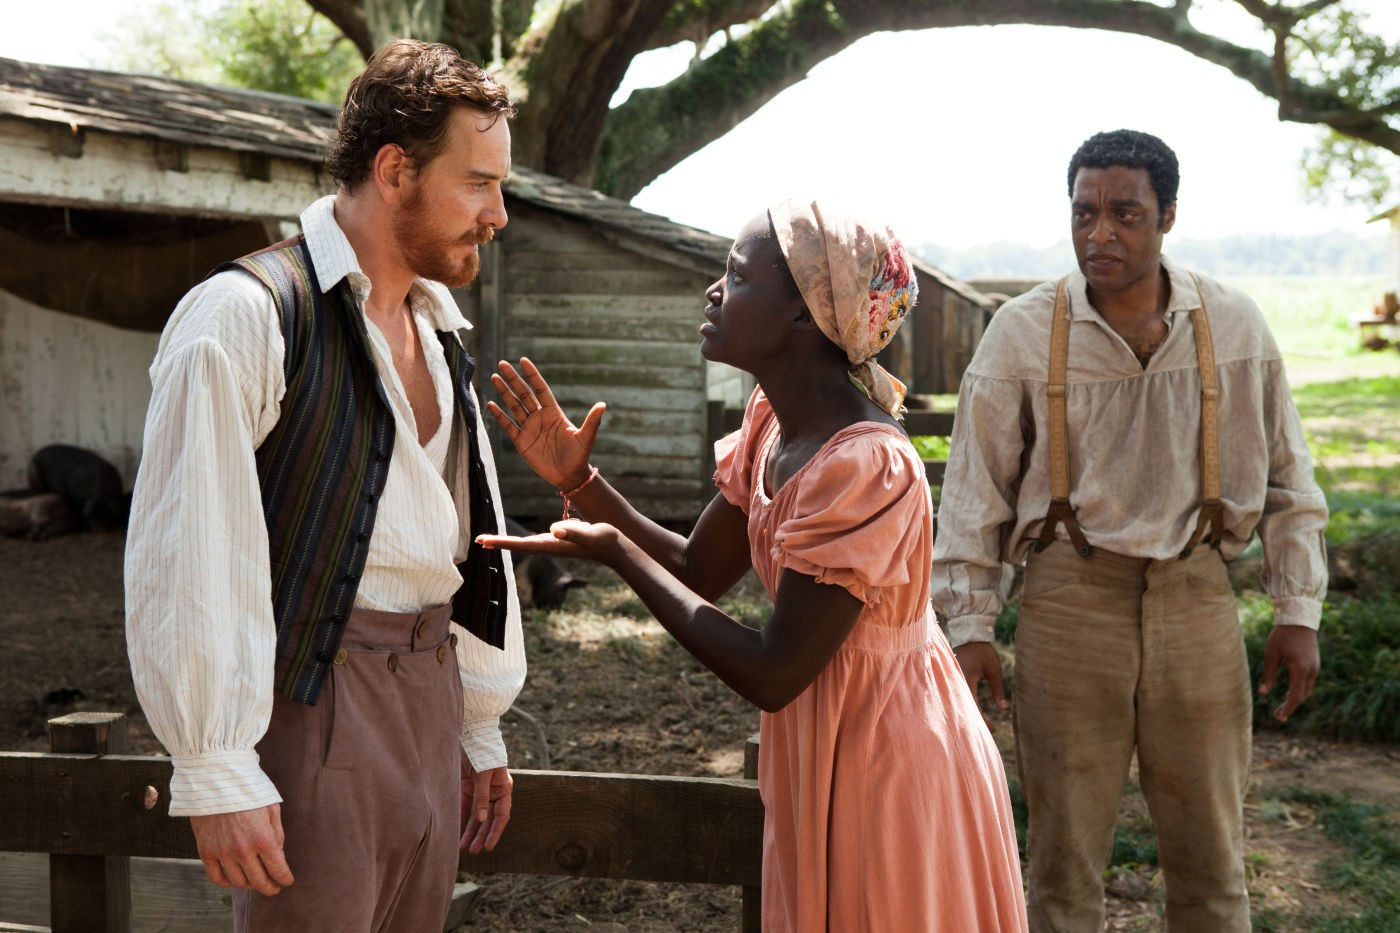 Michael Fassbender (left) as cruel plantation owner Edwin Epps and Lupita Nyong'o as his slave Patsey.